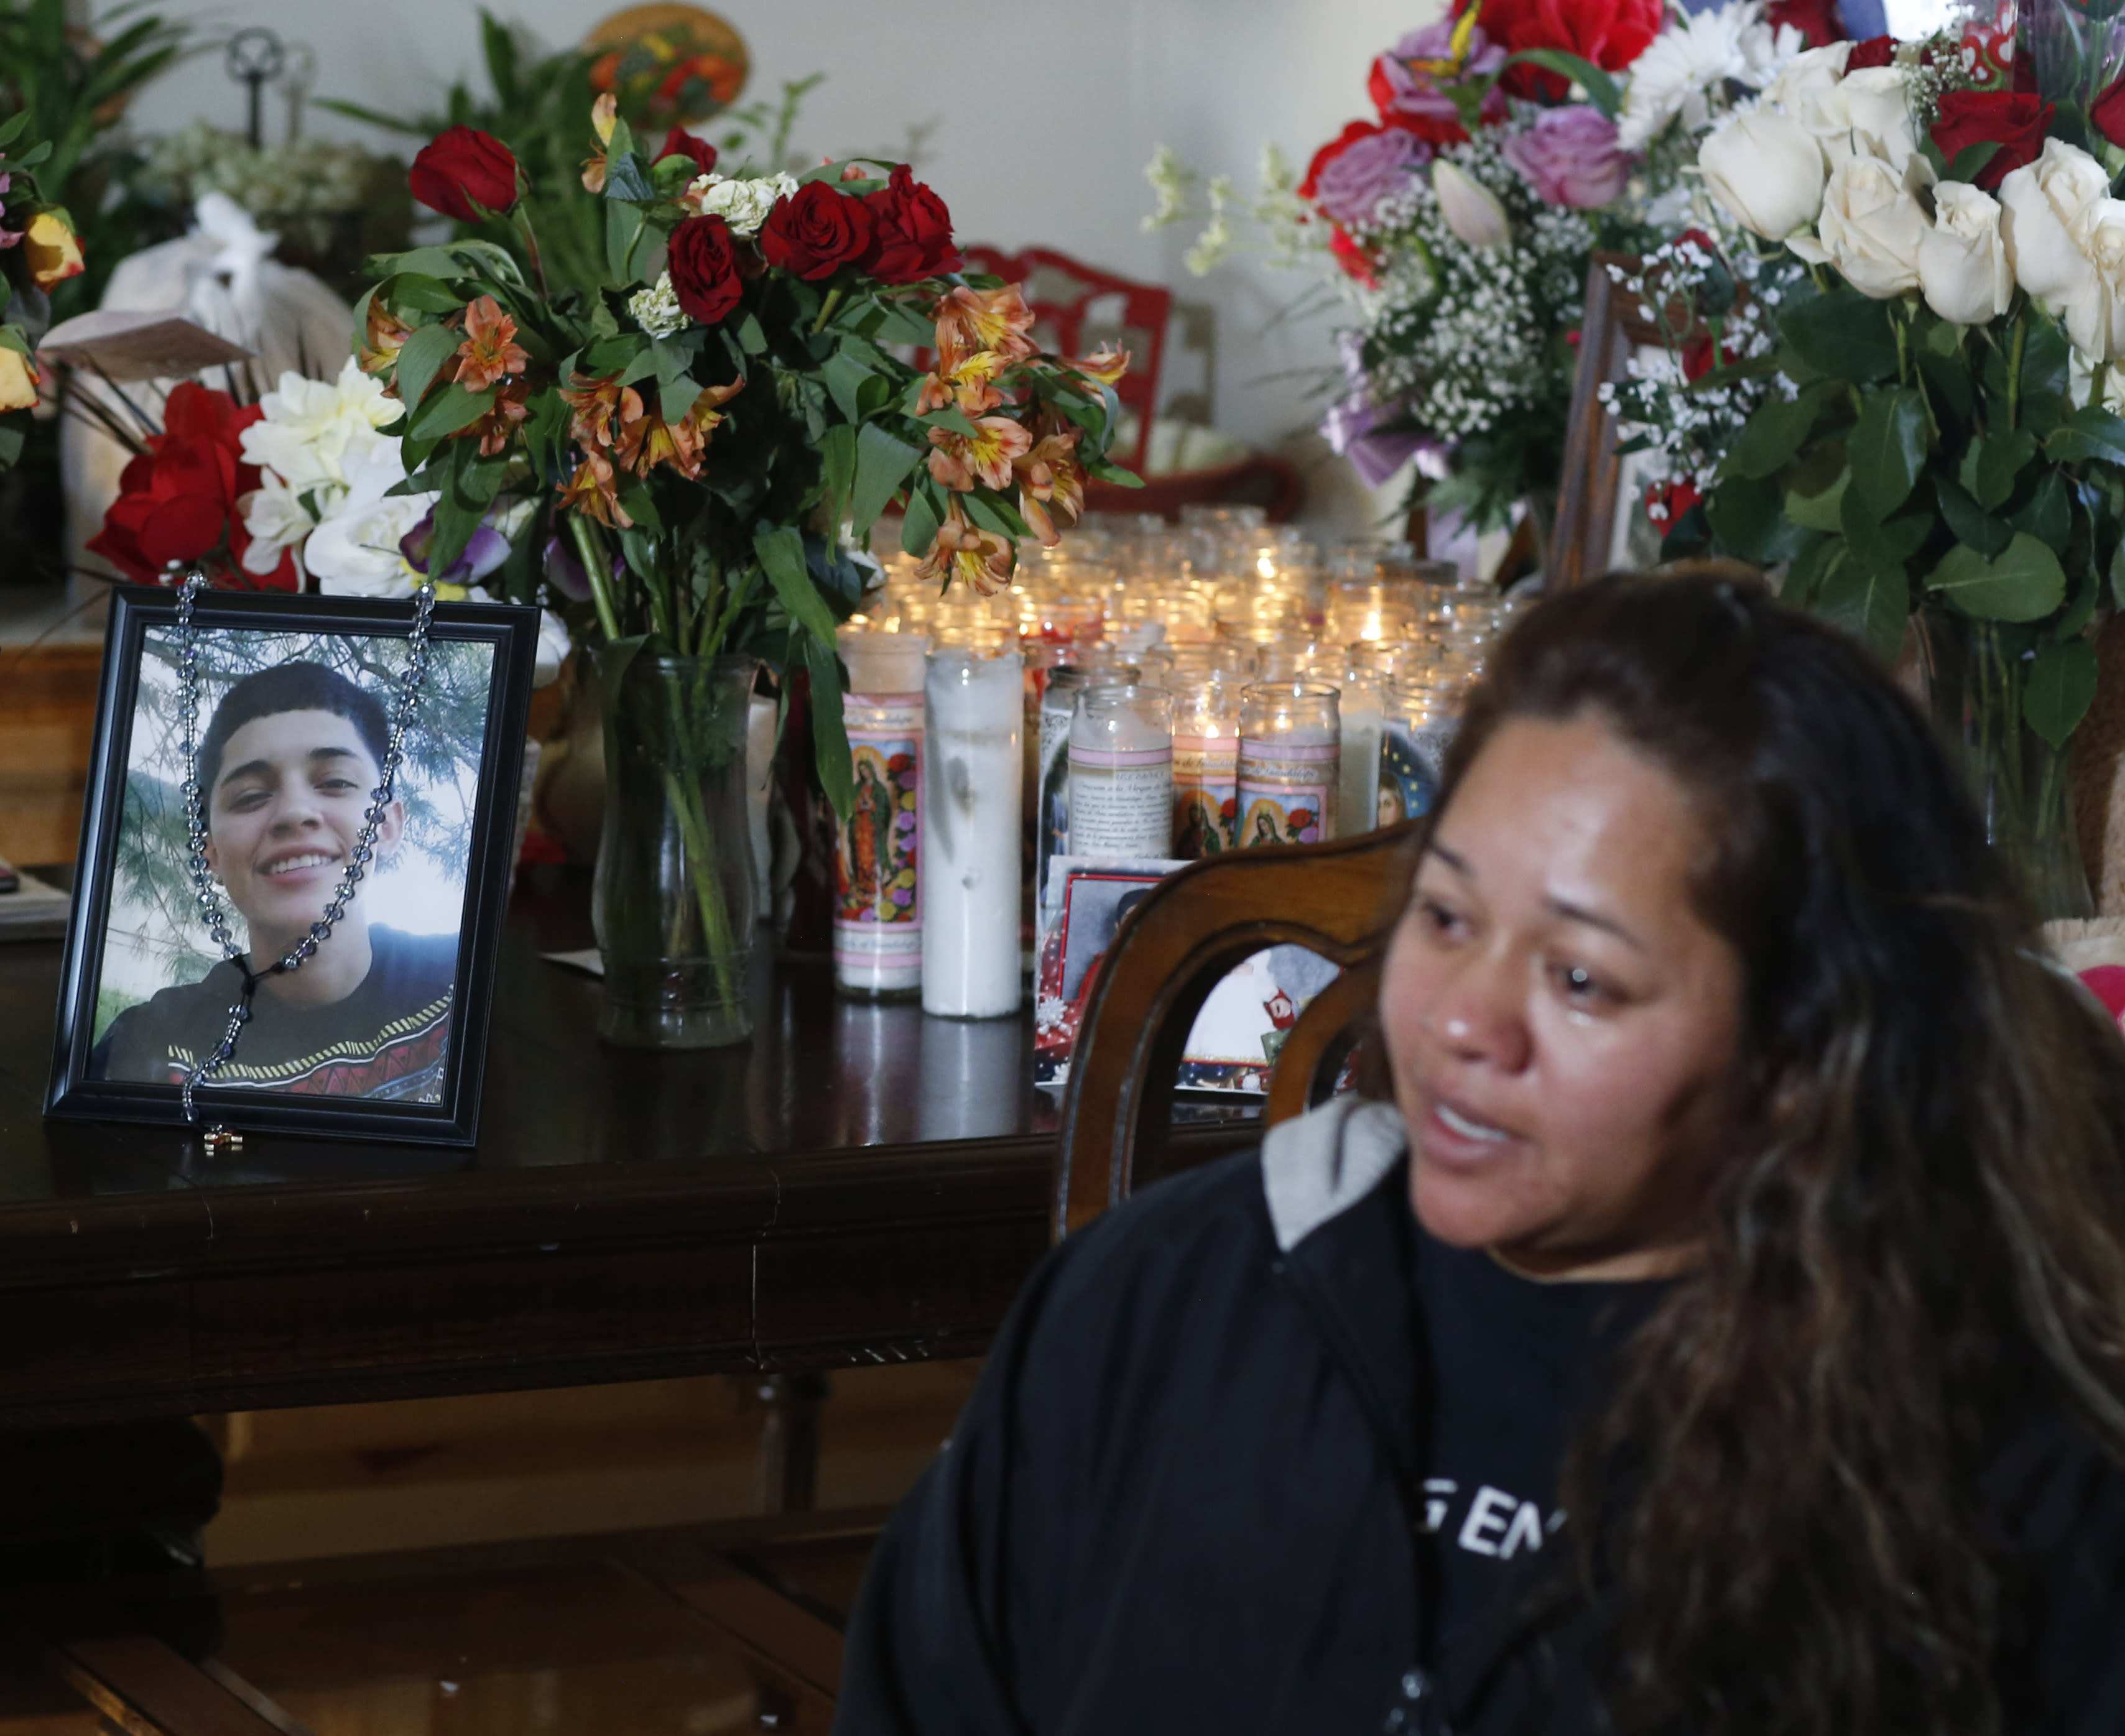 Teen killed by police previously cited for resisting arrest